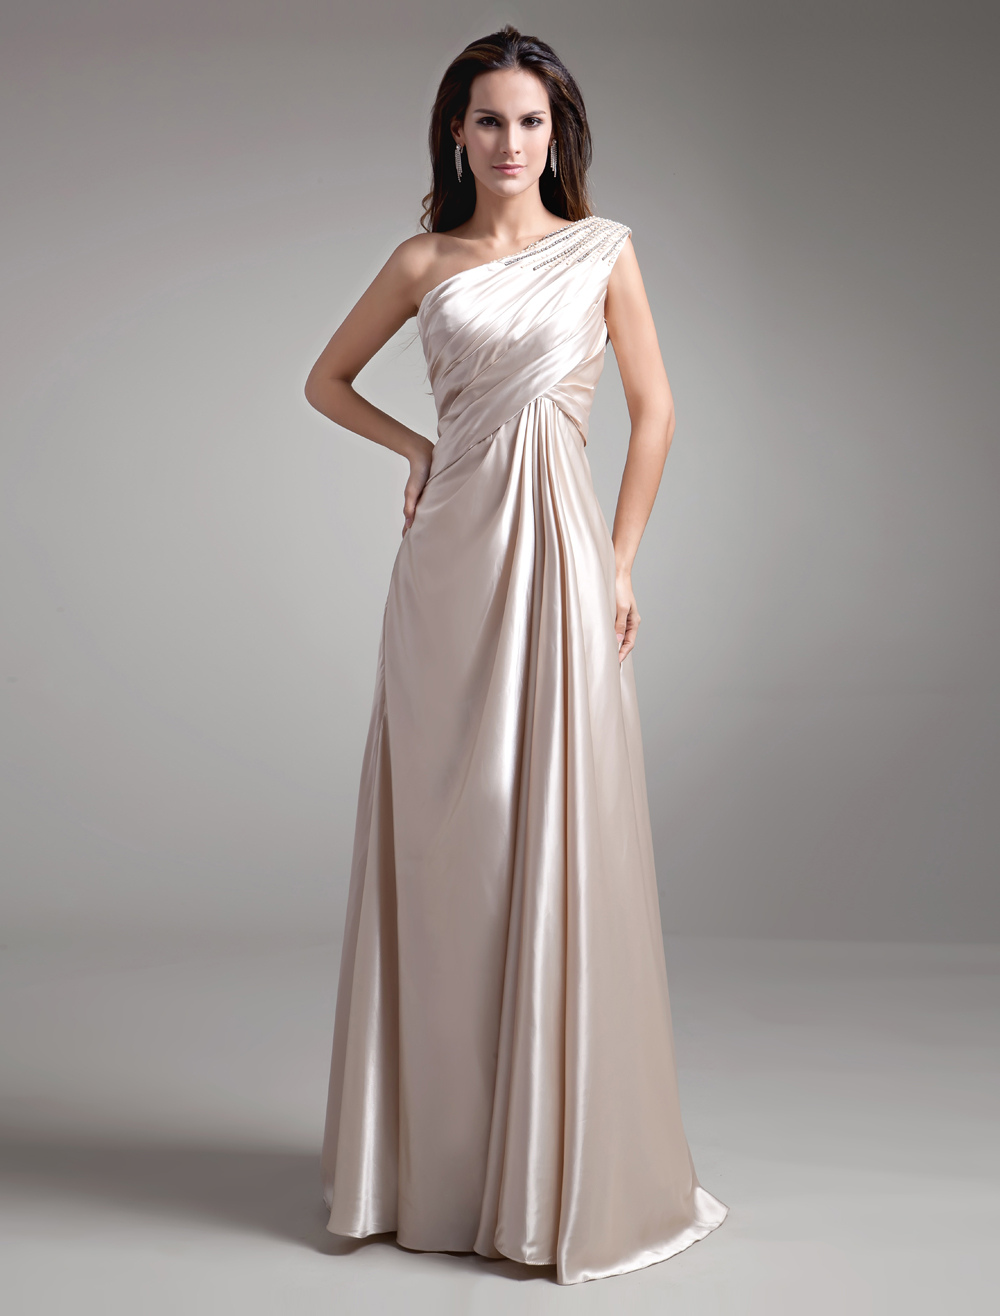 Champagne Draped Beading One-Shoulder Women's Evening Dress Wedding Guest Dress